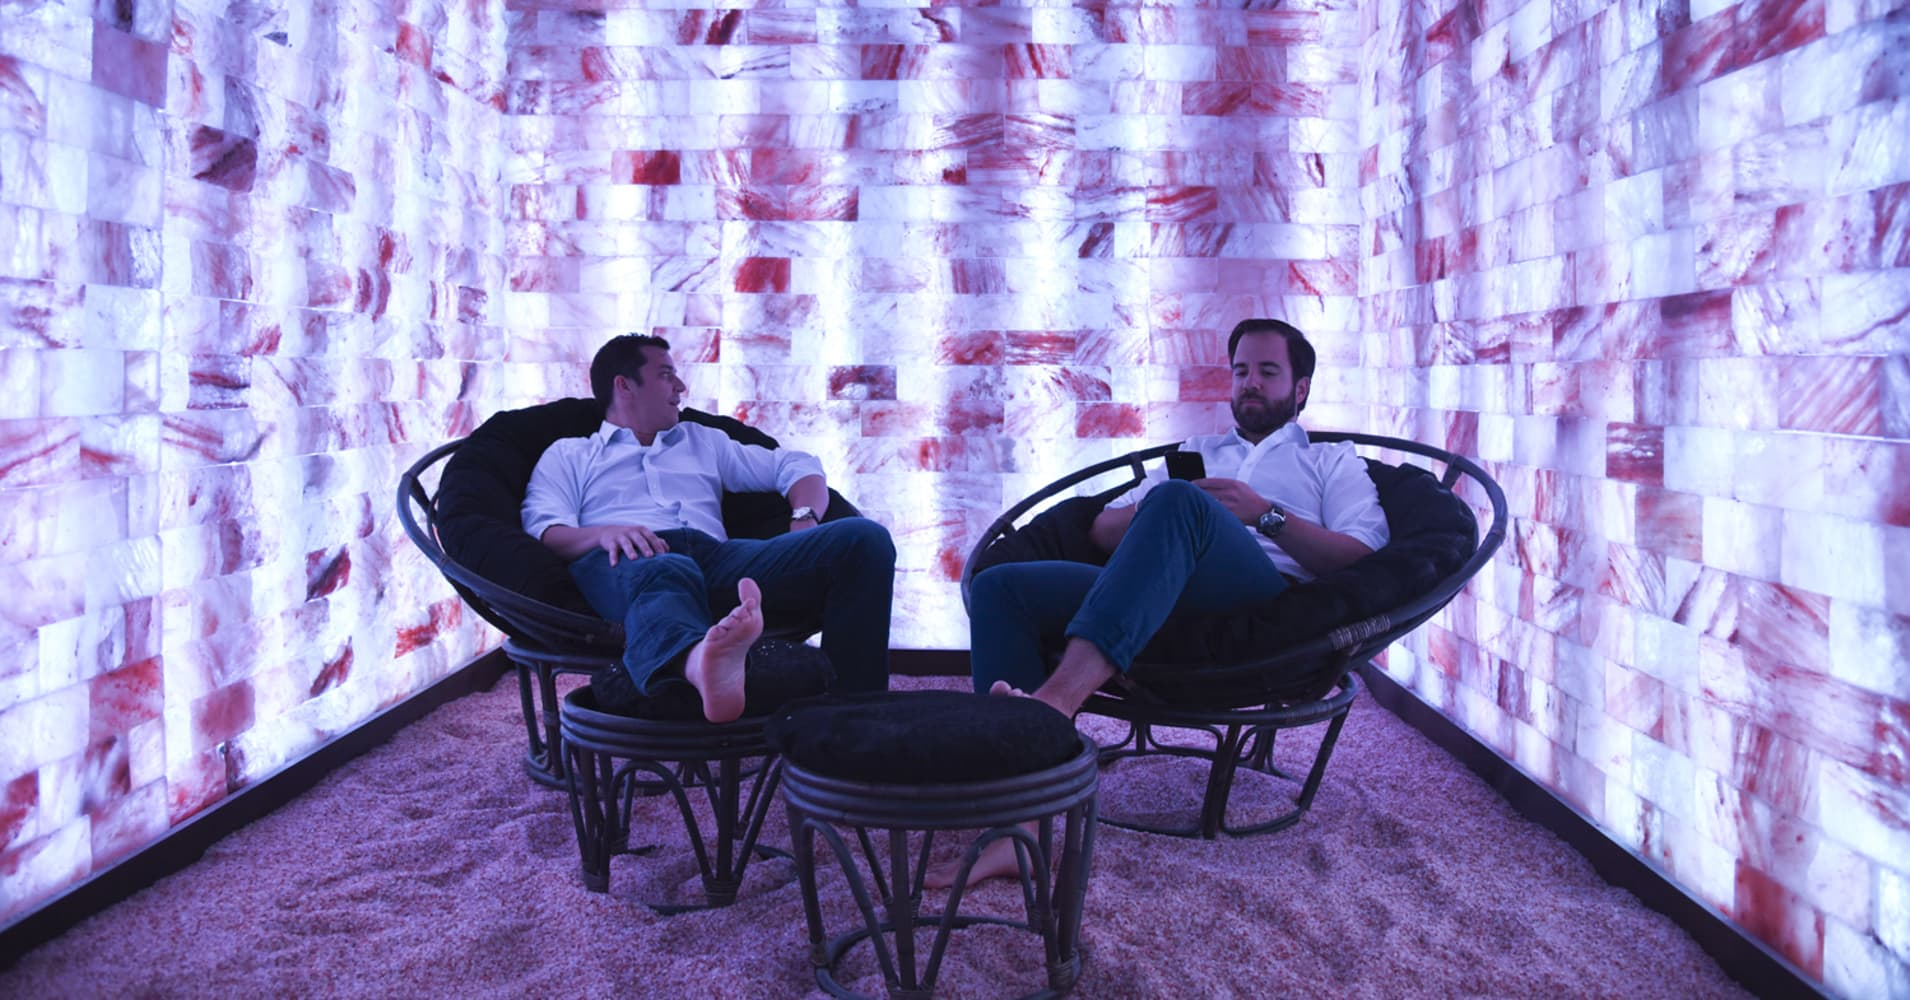 Erik Hess, left, and Marco Schnabl, both of automotiveMastermind, hold a meeting in a Himalayan salt room at Modrn Sanctuary in New York, Aug. 30, 2017.